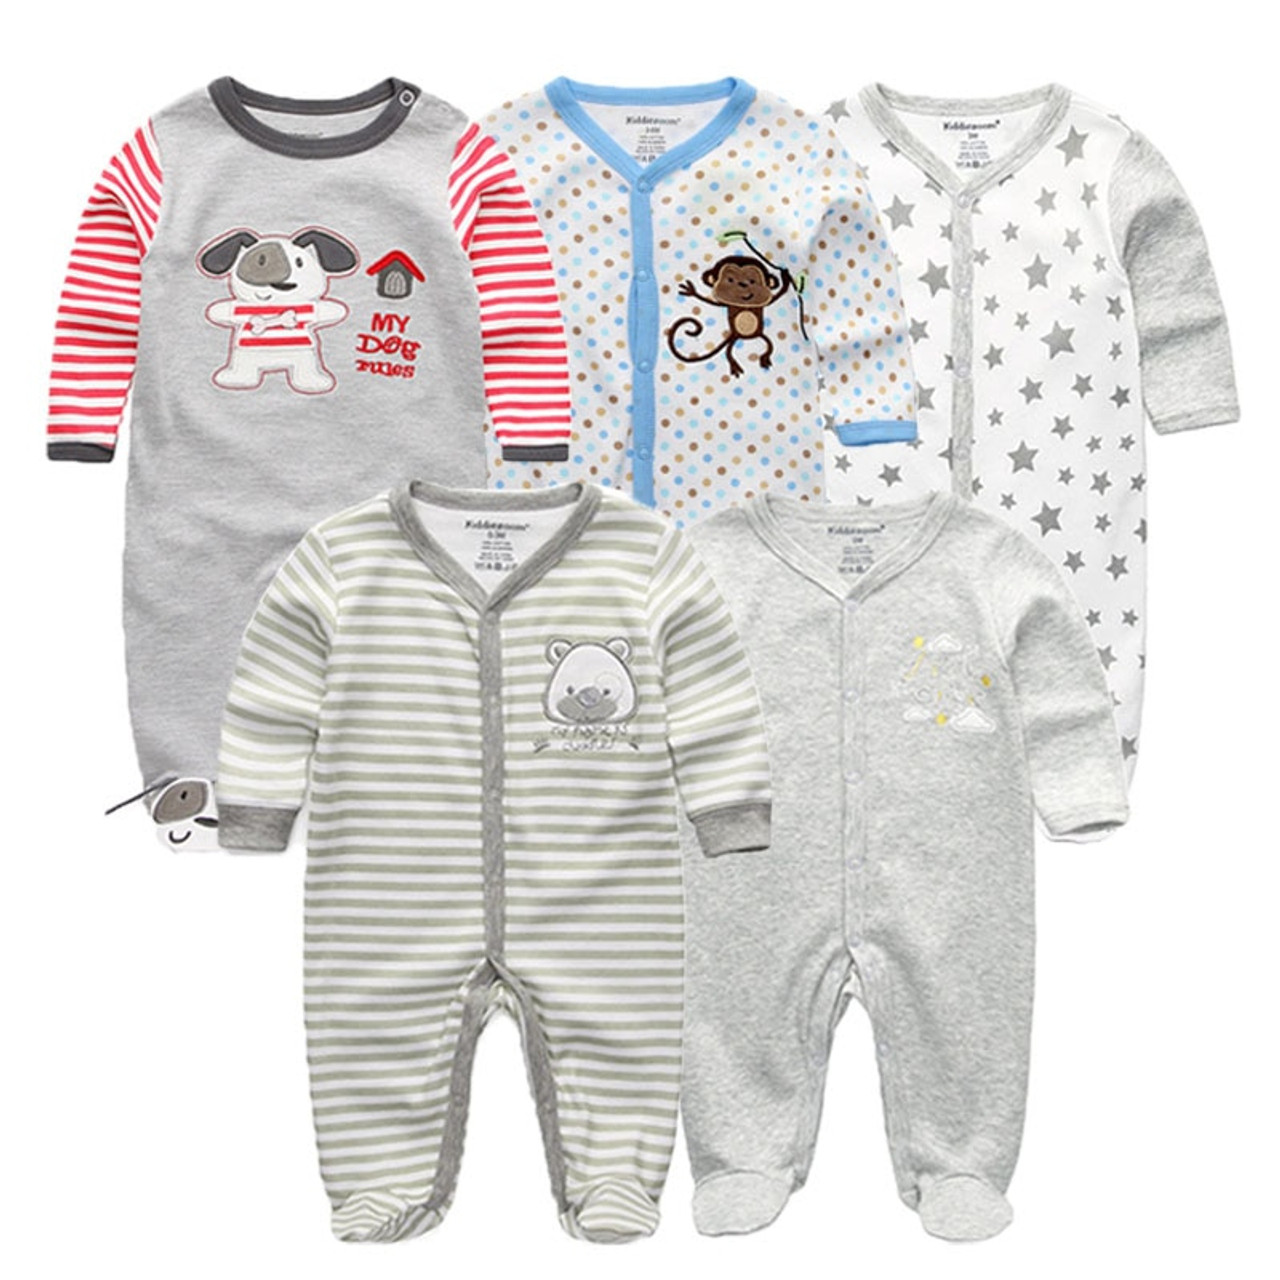 47e12c391 newbron 2018 winter long Sleeve baby rompers set Cotton baby ...